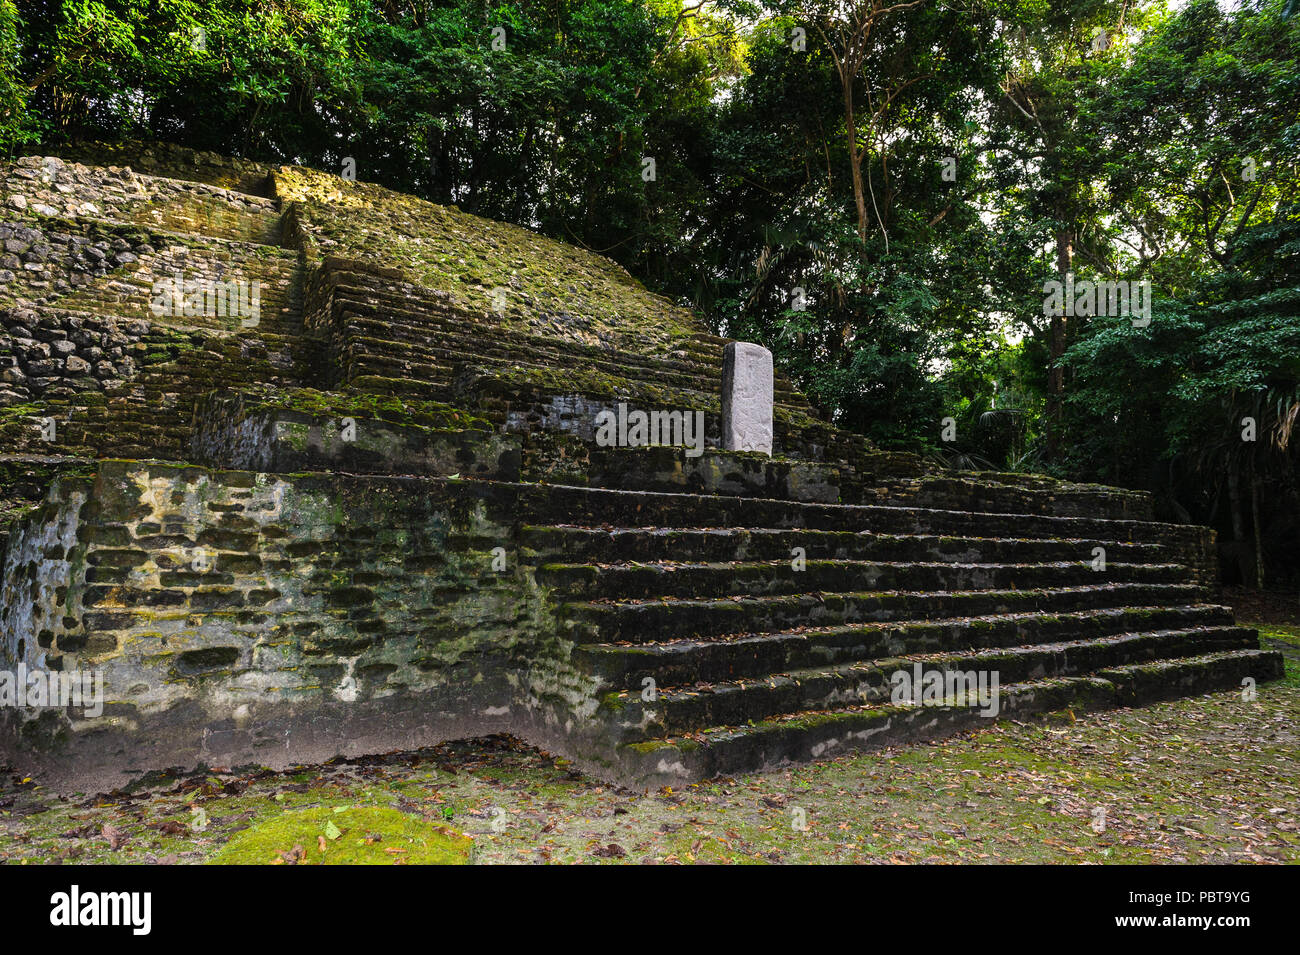 Maya civilization constructions in Belize - Stock Image